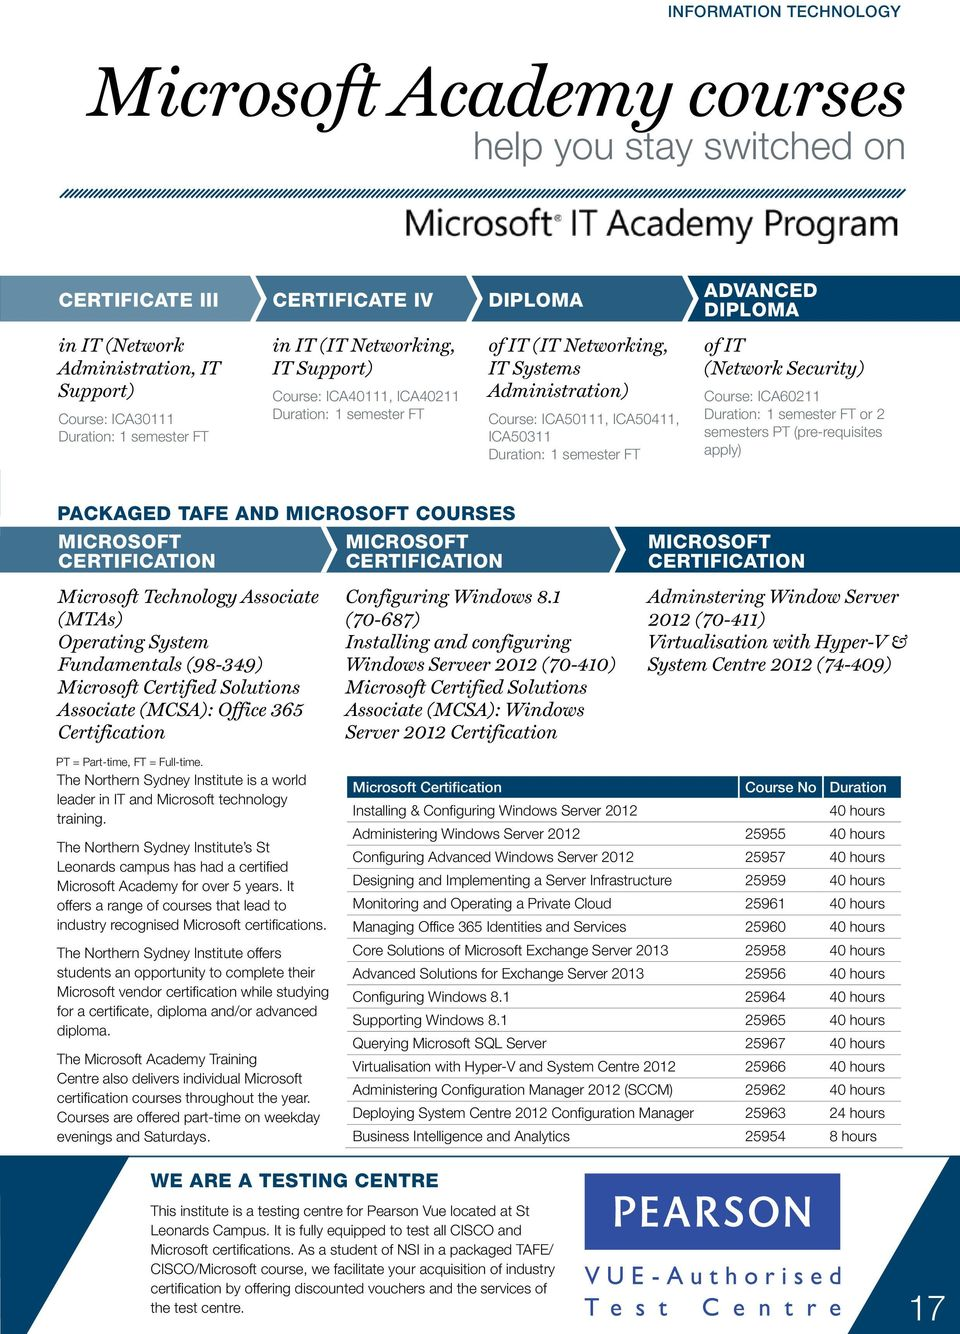 Advanced Diploma of IT (Network Security) Course: ICA60211 Duration: 1 semester FT or 2 semesters PT (pre-requisites apply) Packaged TAFE and Microsoft courses Microsoft Certification Microsoft